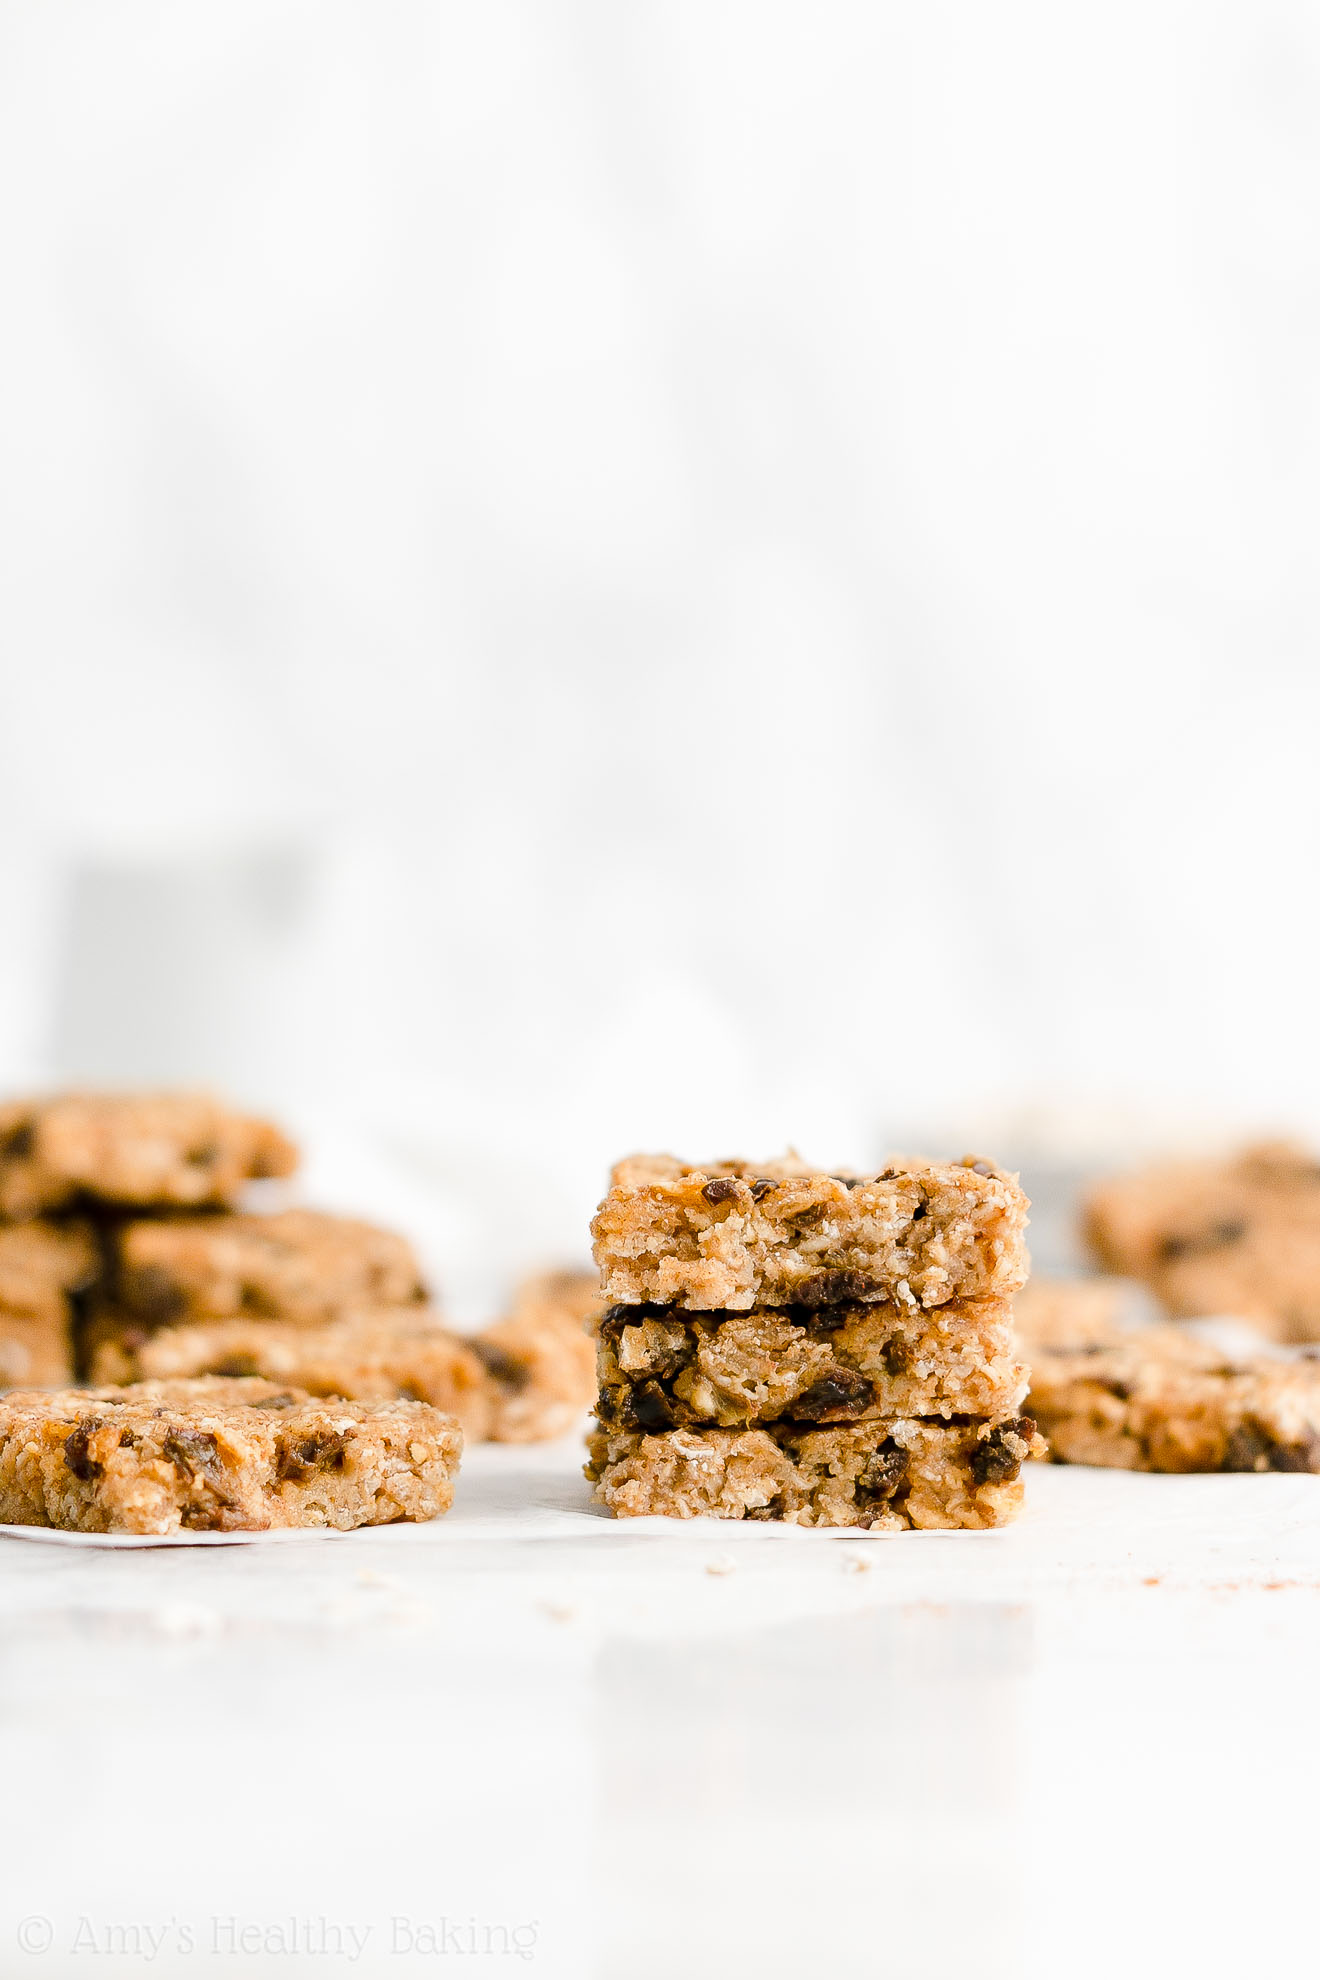 Easy Healthy Low Fat Low Calorie Soft Chewy Oatmeal Raisin Granola Bars